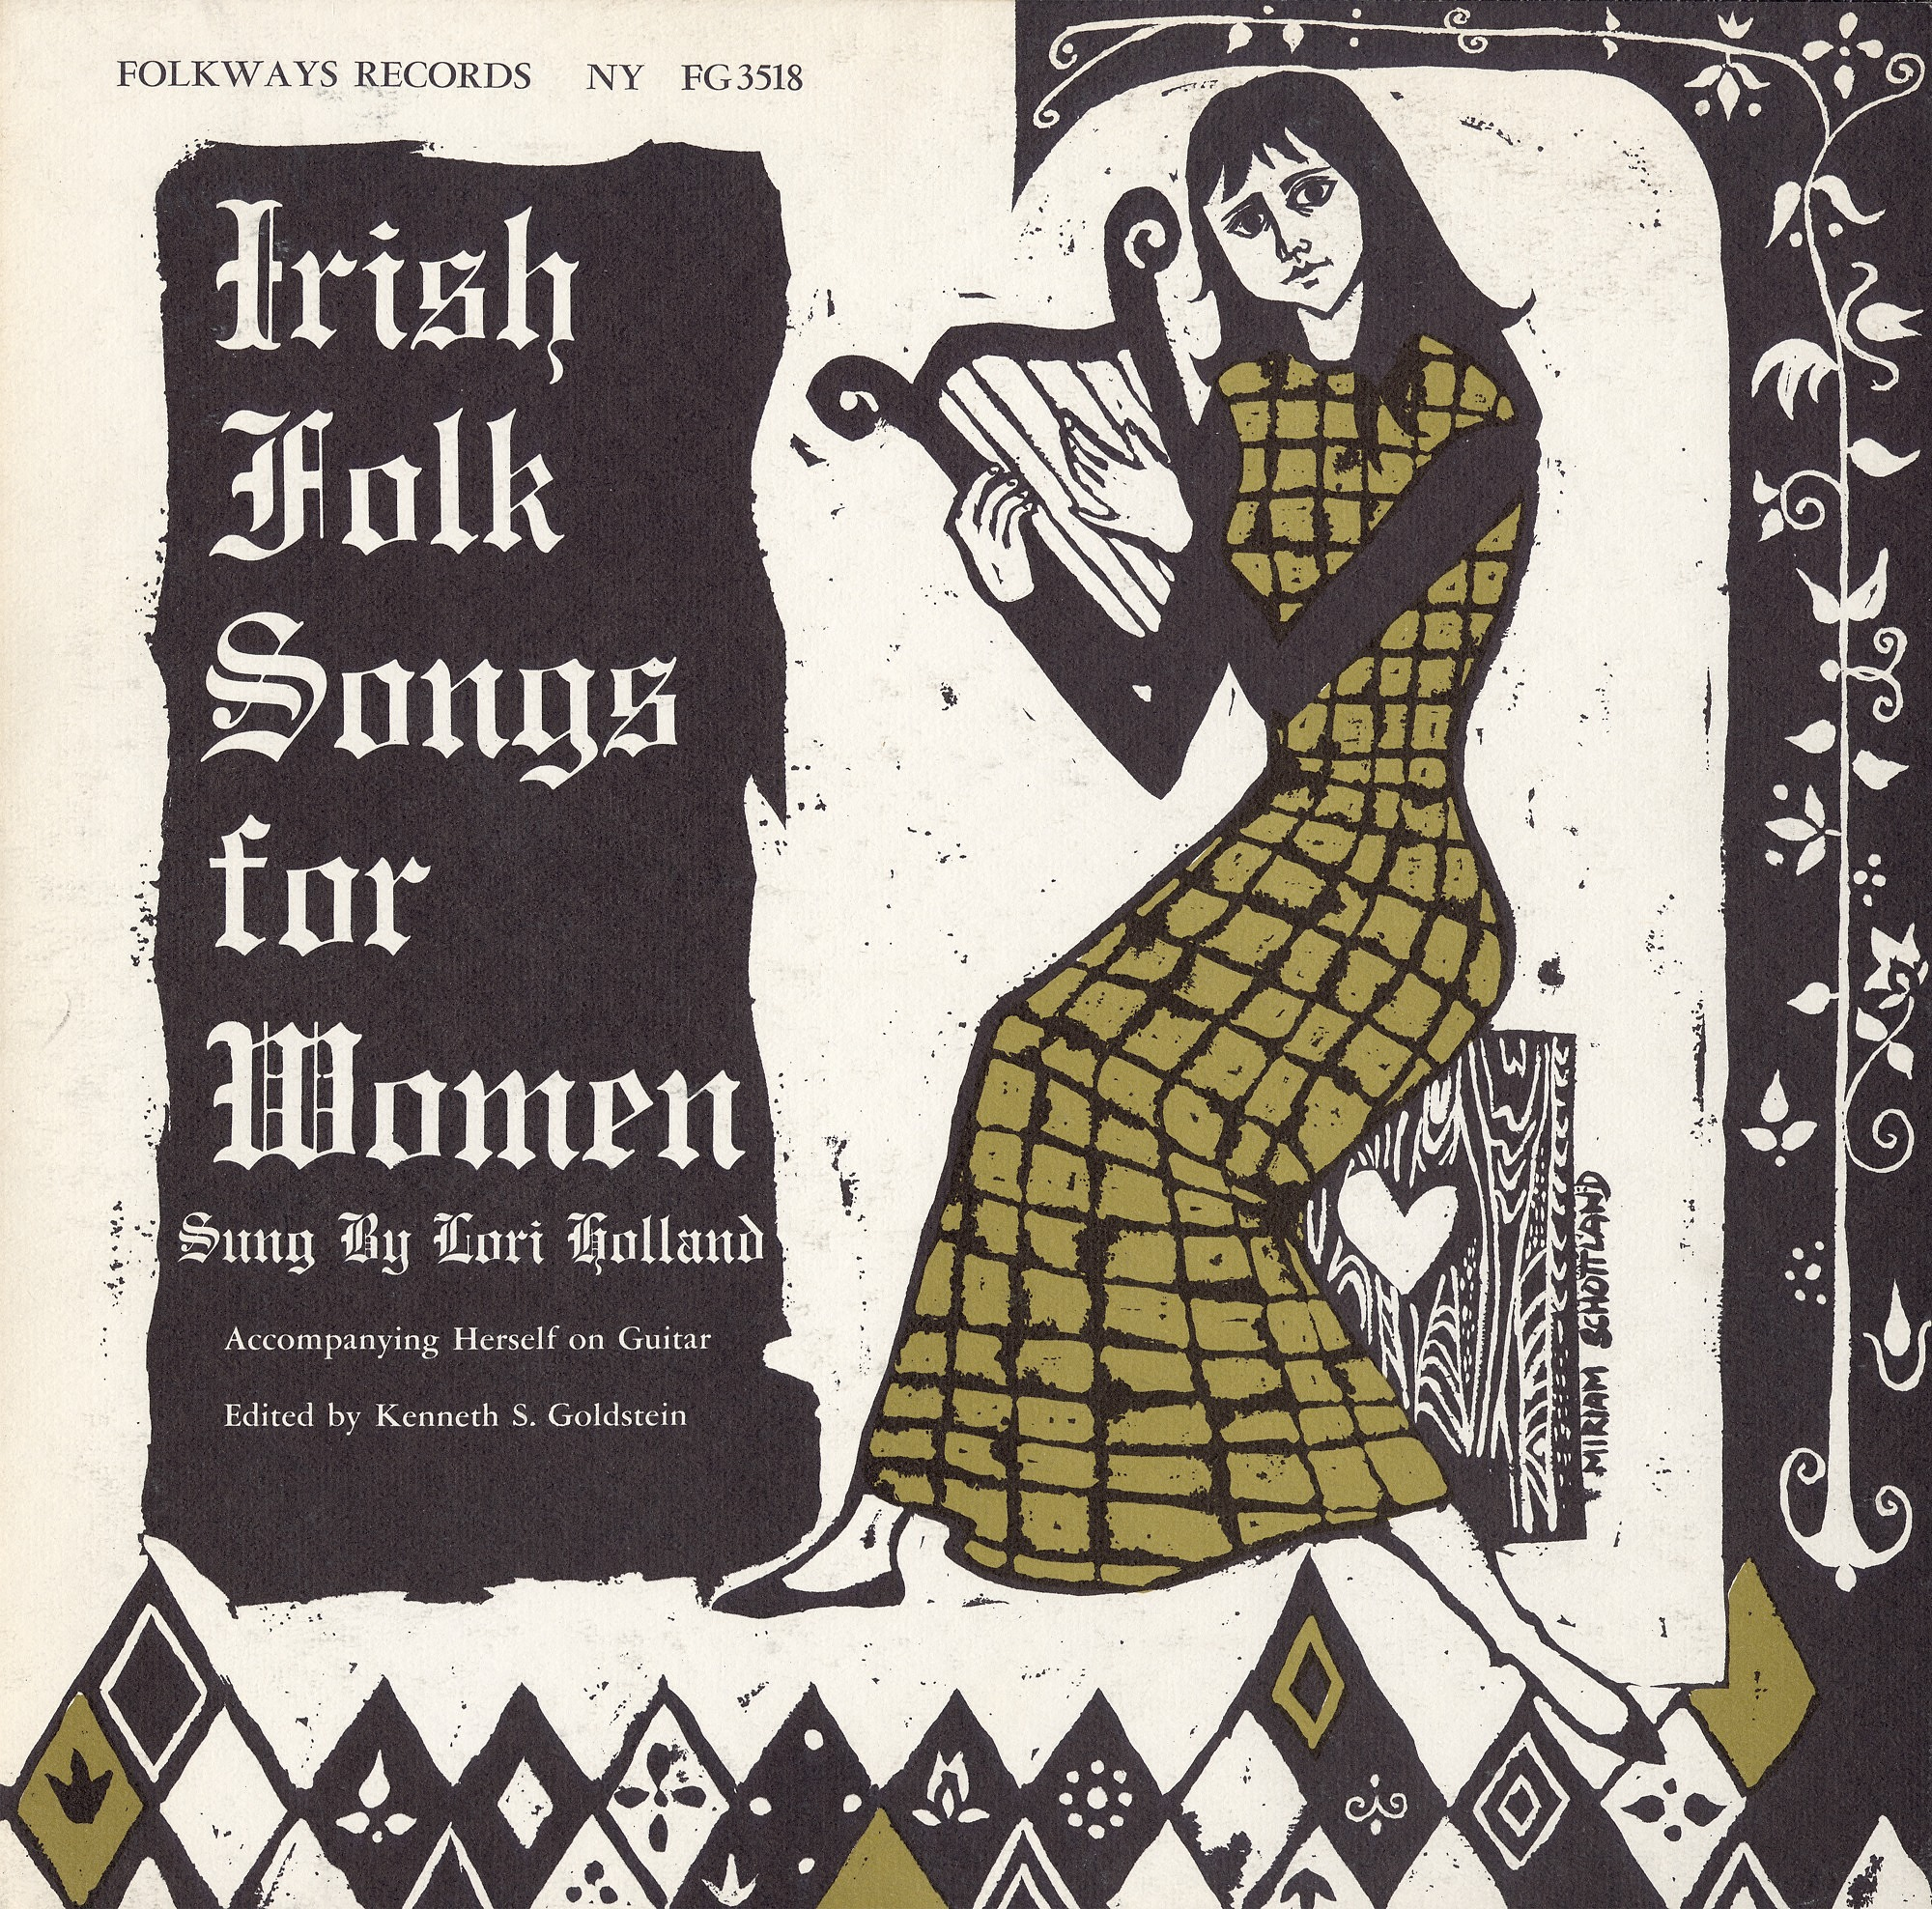 Image 1 for Irish folk songs for women sound recording / sung by Lori Holland ; edited by Kenneth S. Goldstein